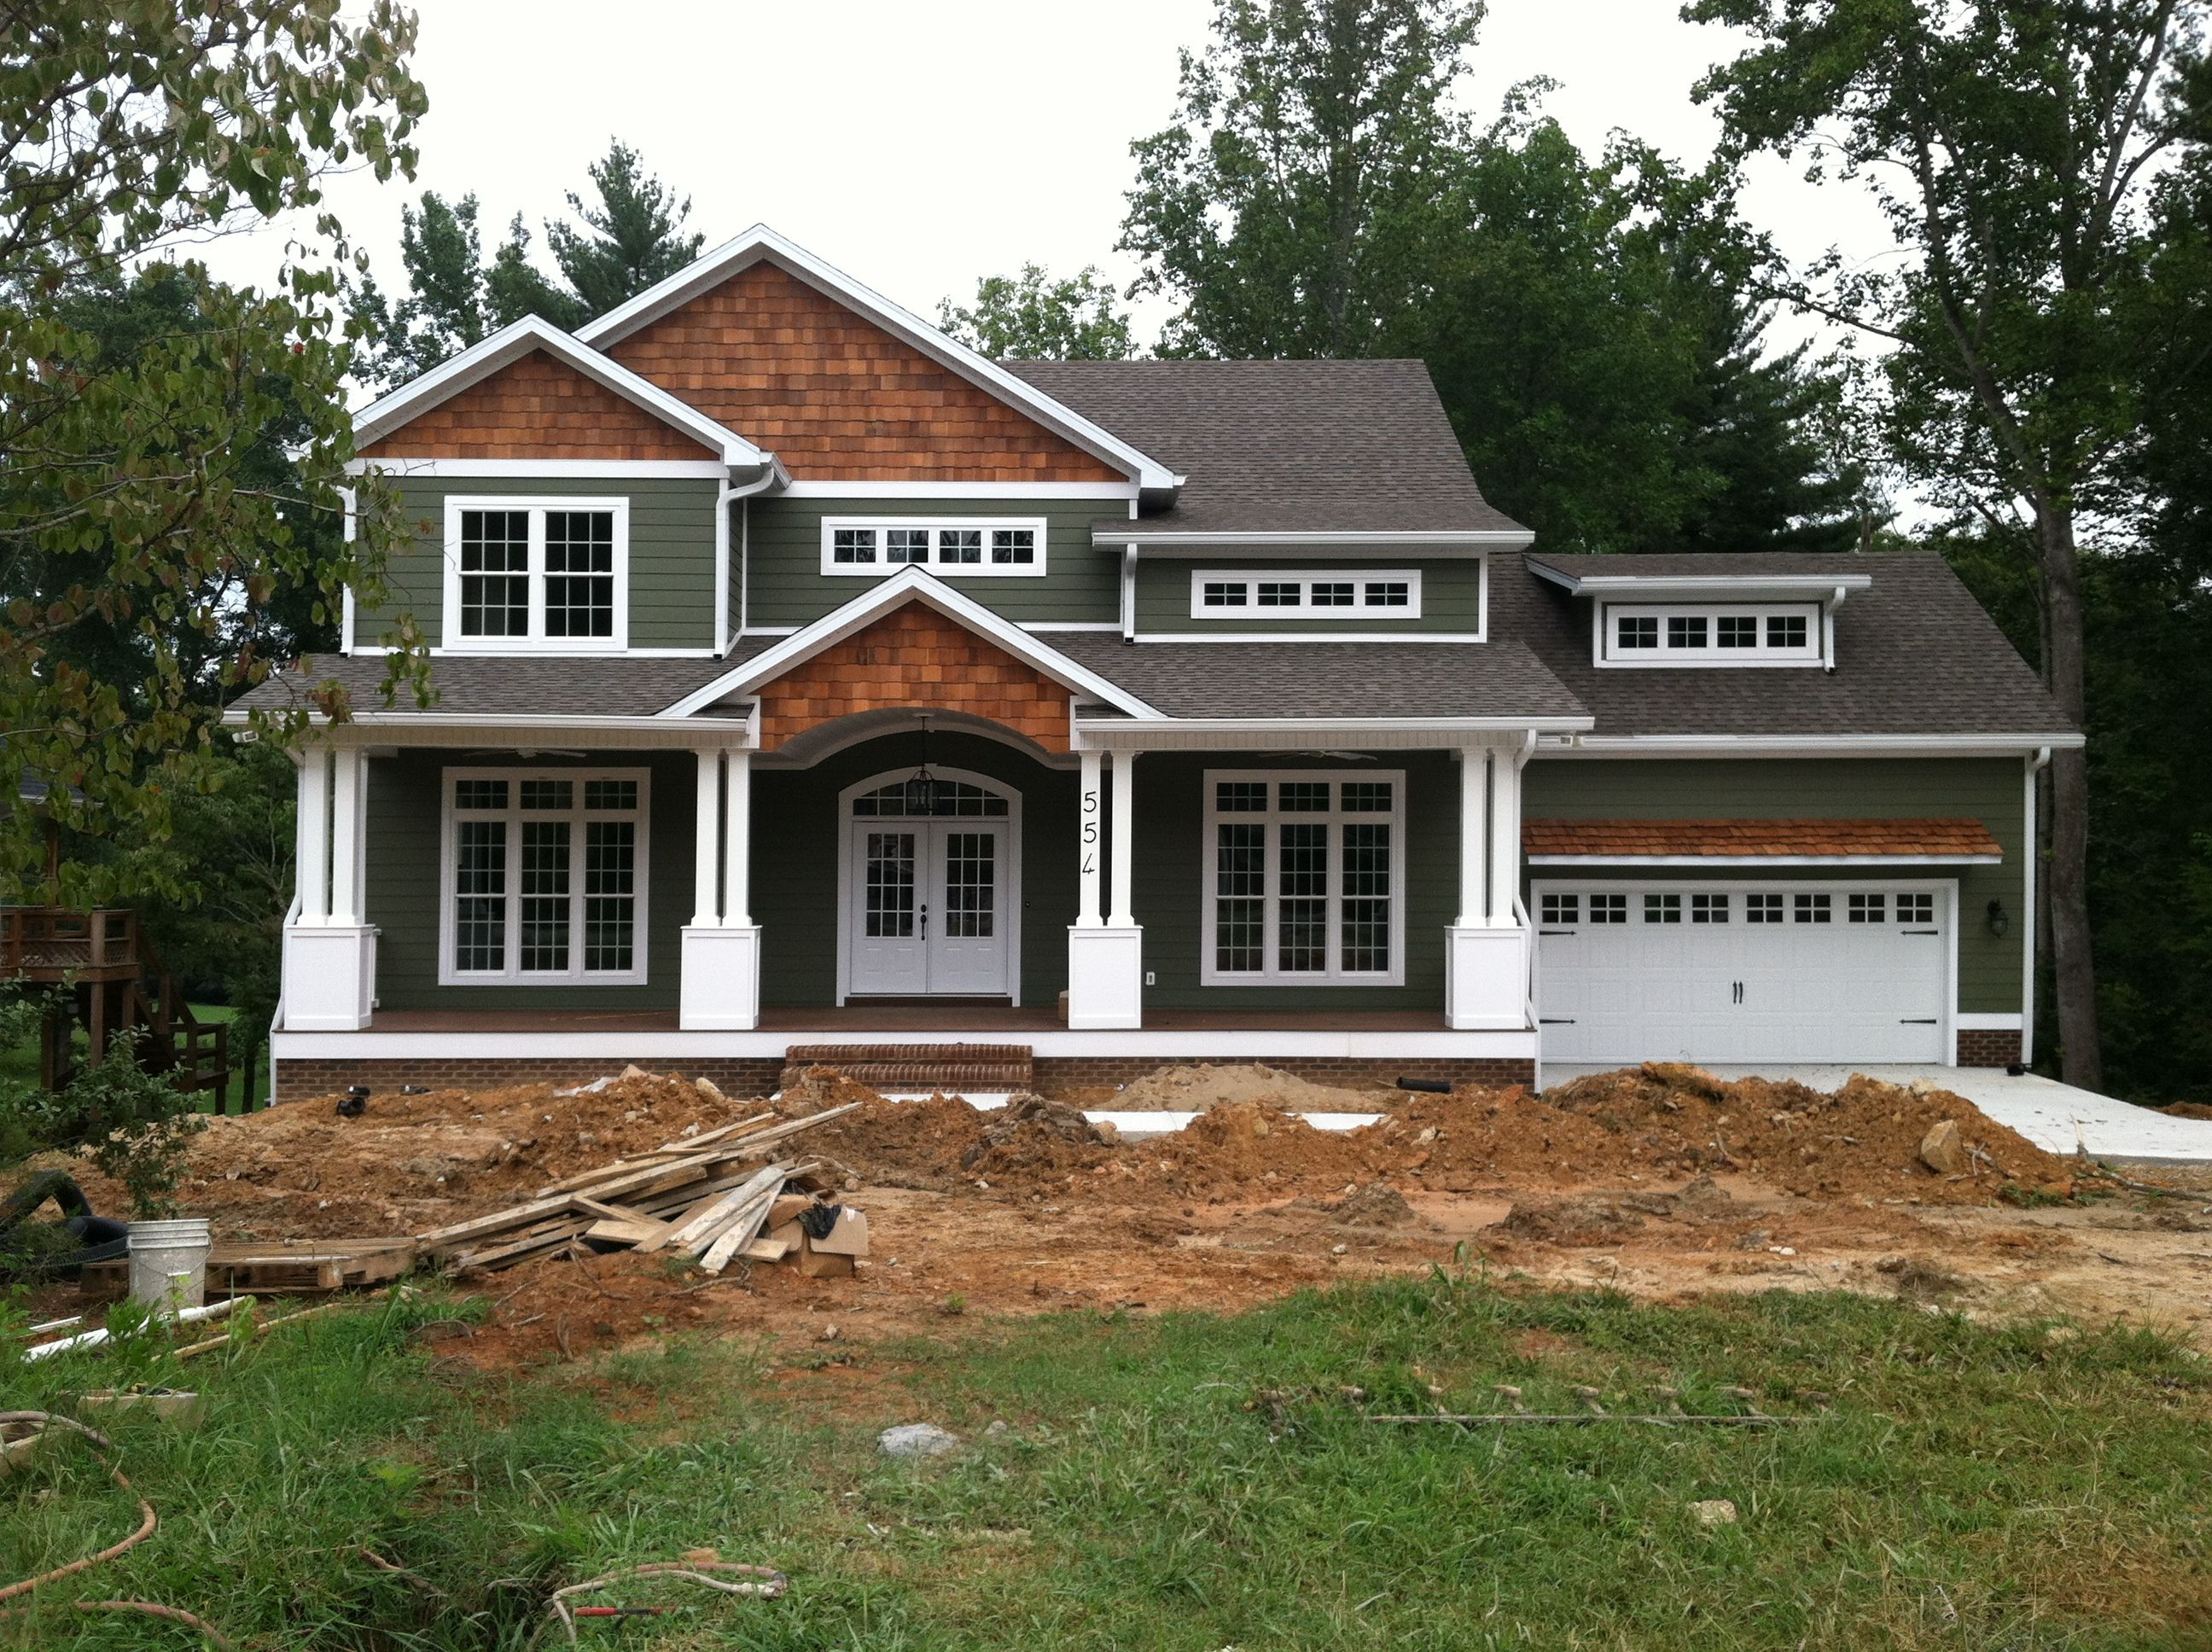 Craftsman style home turn the garage to the side change the color and add some rock work - Craftsman home exterior ...